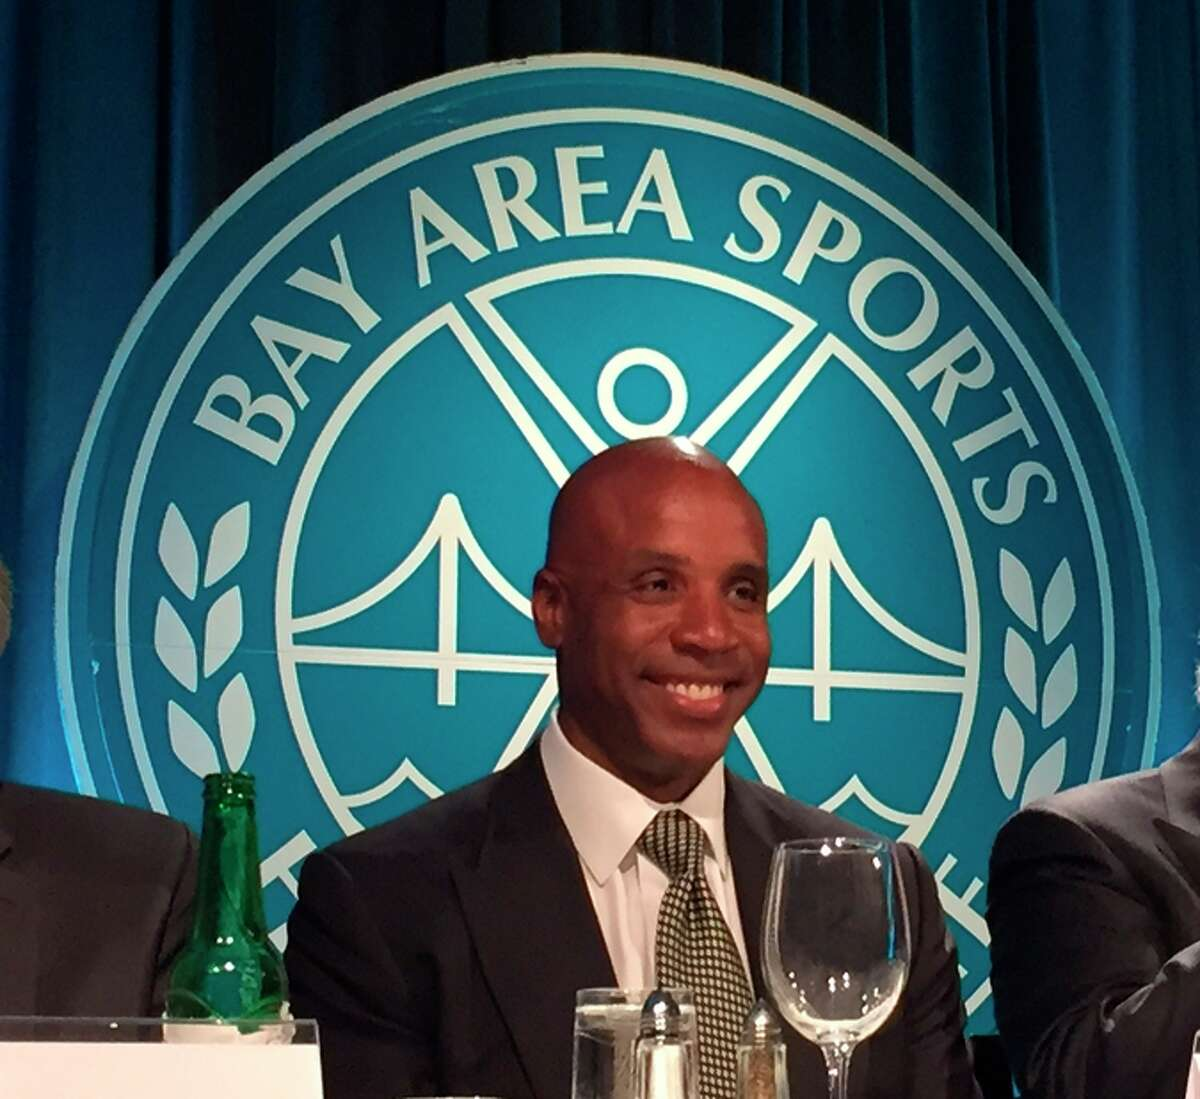 Barry Bonds says the speech he gave at the BASHOF ceremony was the first he'd ever written. Baseball's career home-run leader played 15 seasons for the Giants.